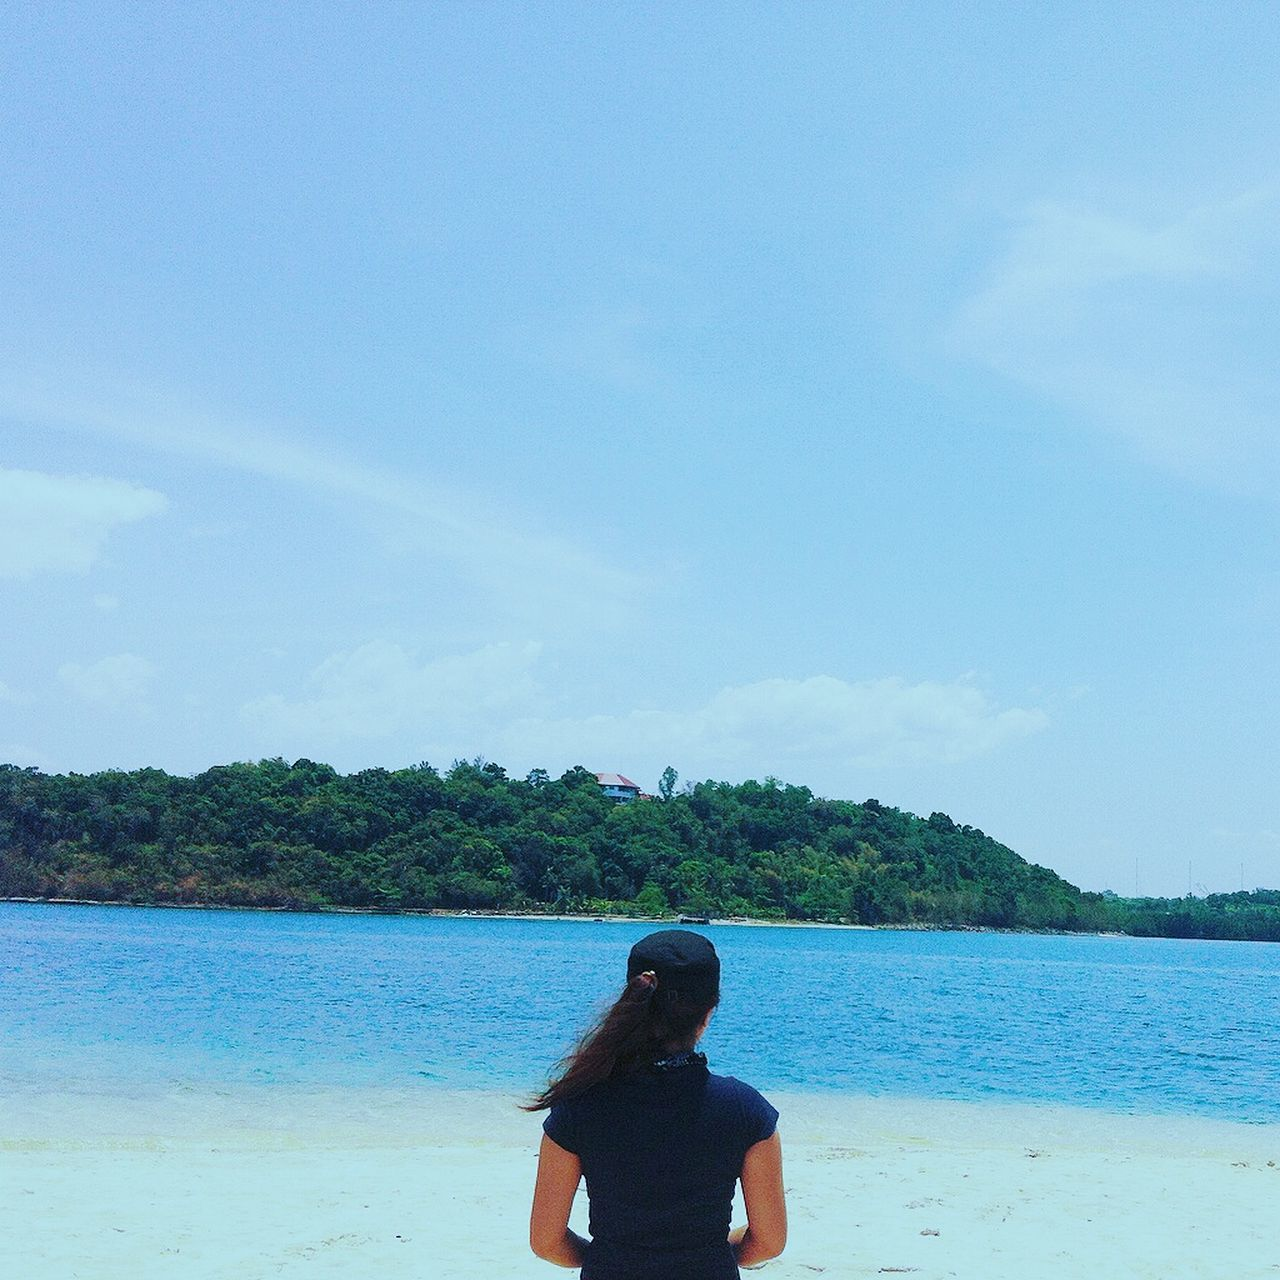 This was the best summer I ever had (so far) :) Miles Away Water Blue Rear View Sky Day Relaxation Sea Outdoors Zambales Magalawaisland Itsmorefuninthephilippines Bestsummer Beach Filipina